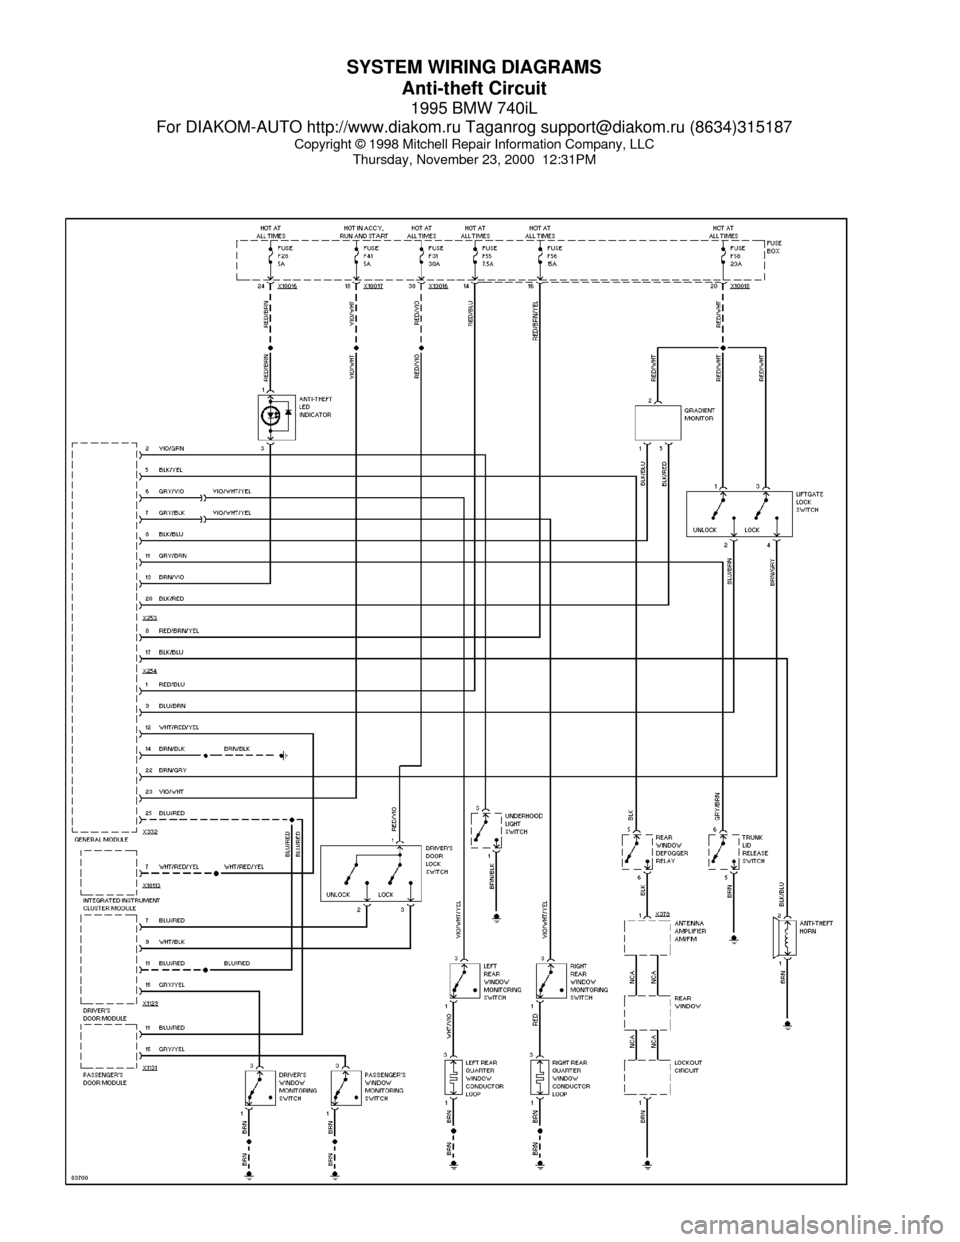 BMW 740il 1995 E38 System Wiring Diagrams